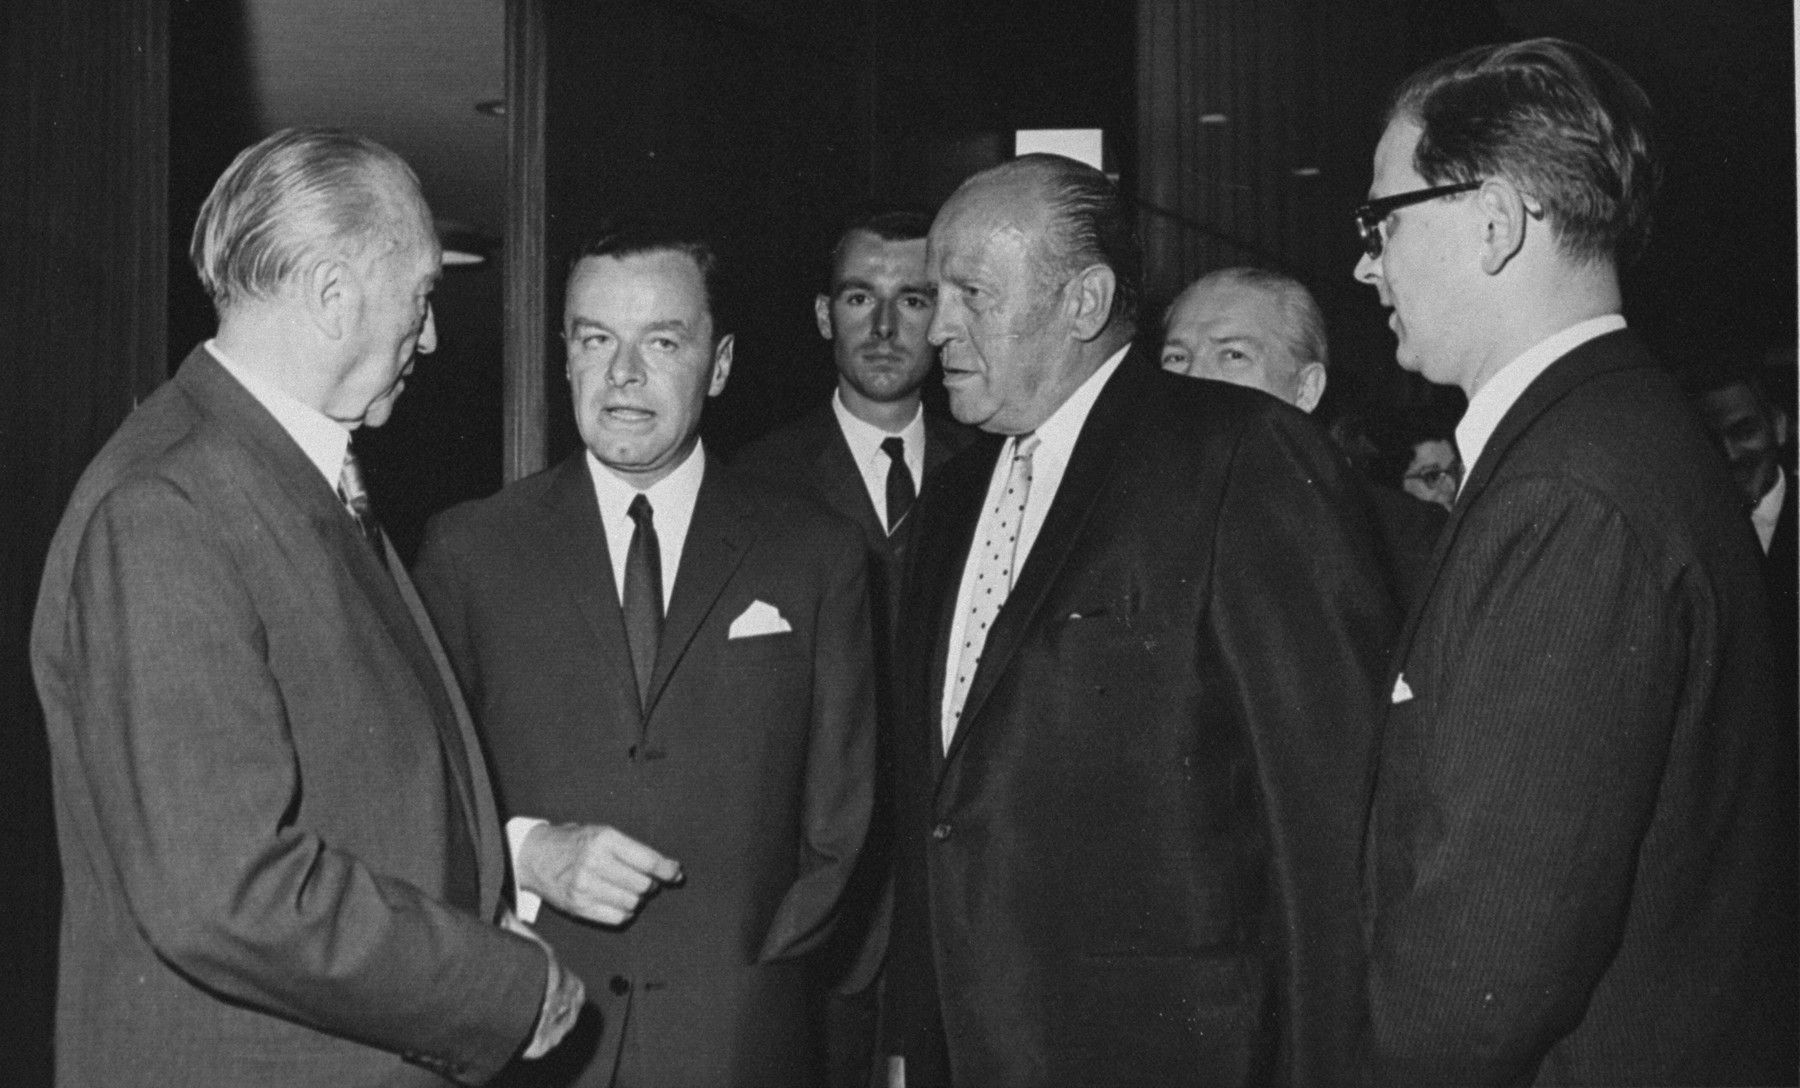 Oskar Schindler (center) with Konrad Adenauer, Chancellor of Germany.  The man in the middle is Germany's first ambassador in Israel, Rolf Friedemann Pauls. Over his left shoulder (to his right in the picture) is his consultant, cultural attache Jörg von Uthmann.